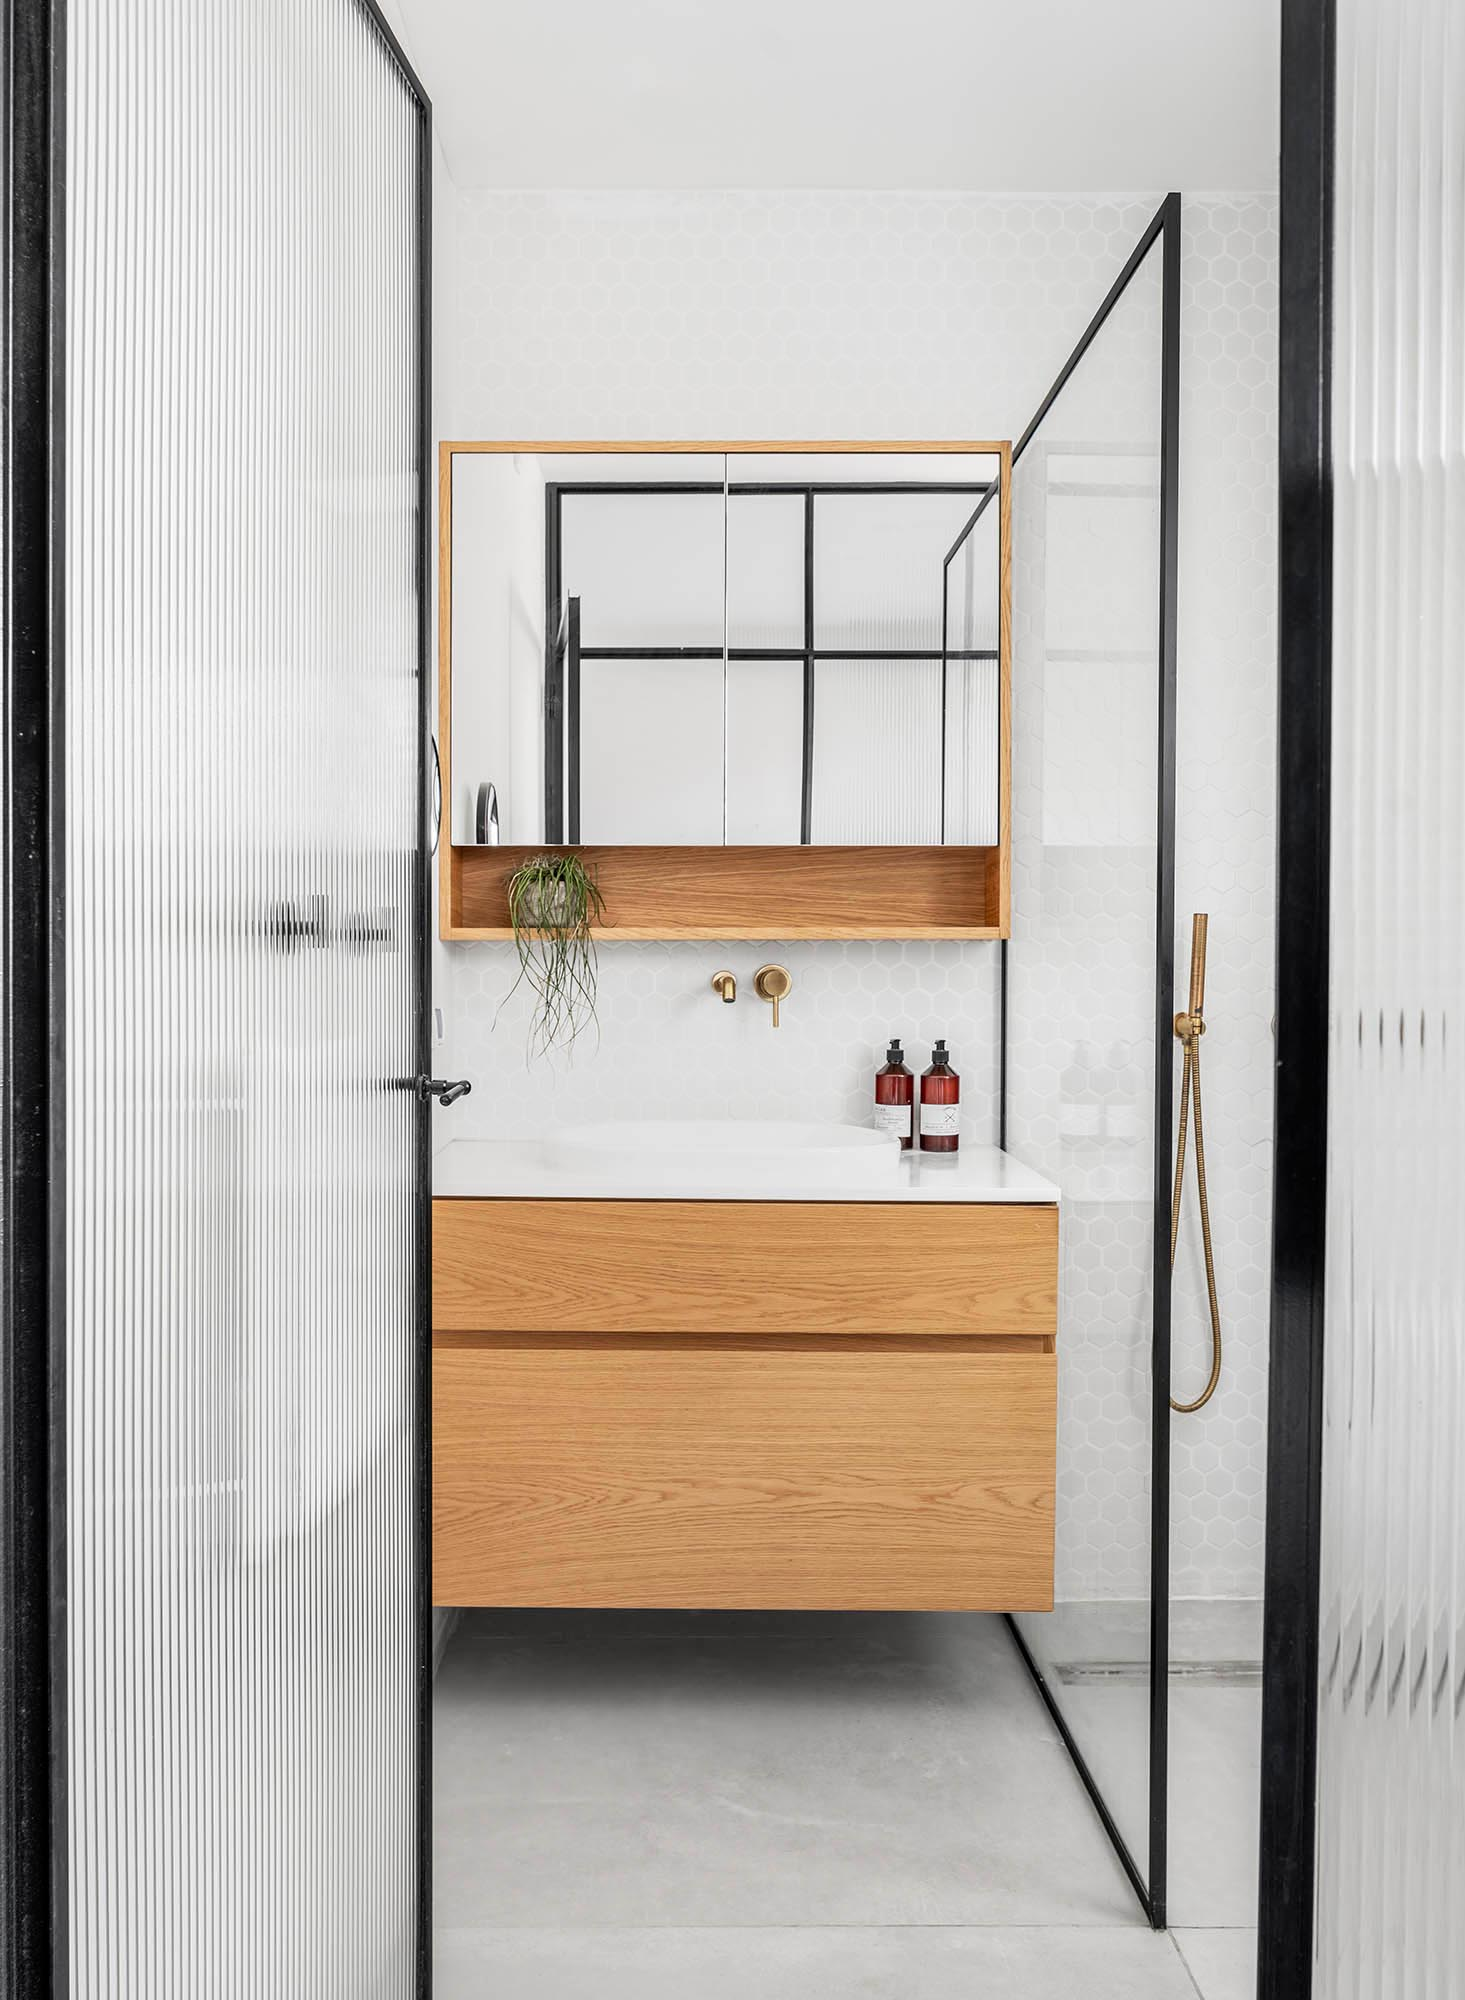 Inside this modern bathroom is a floating wood vanity with a white countertop and sink, while white hexagonal tiles cover the walls.